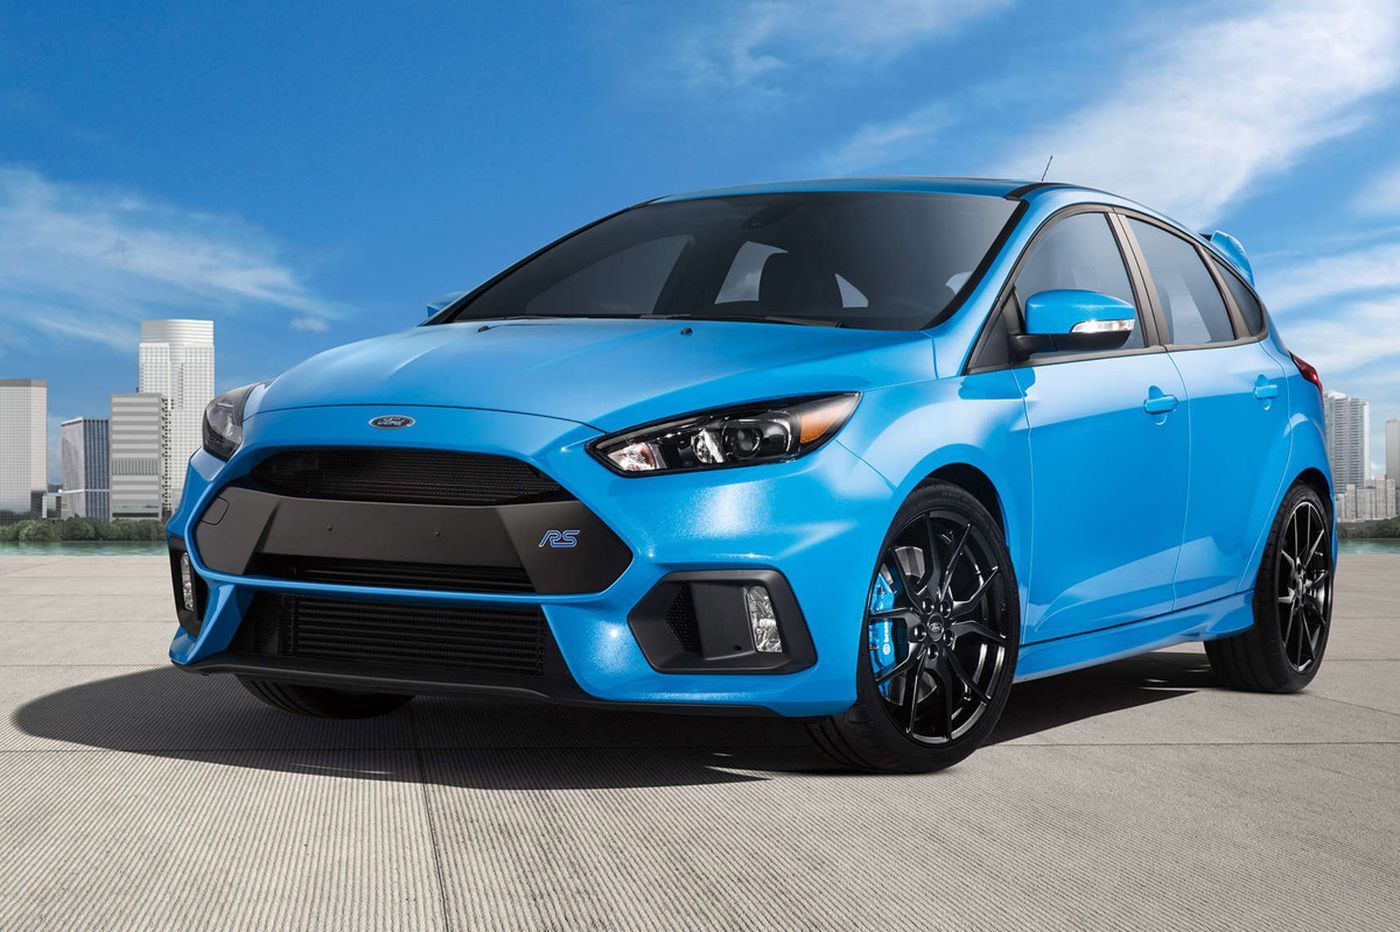 Mitsubishi Lancer Evolution Final Edition Vs. Ford Focus RS: This week, the fast, fun Focus